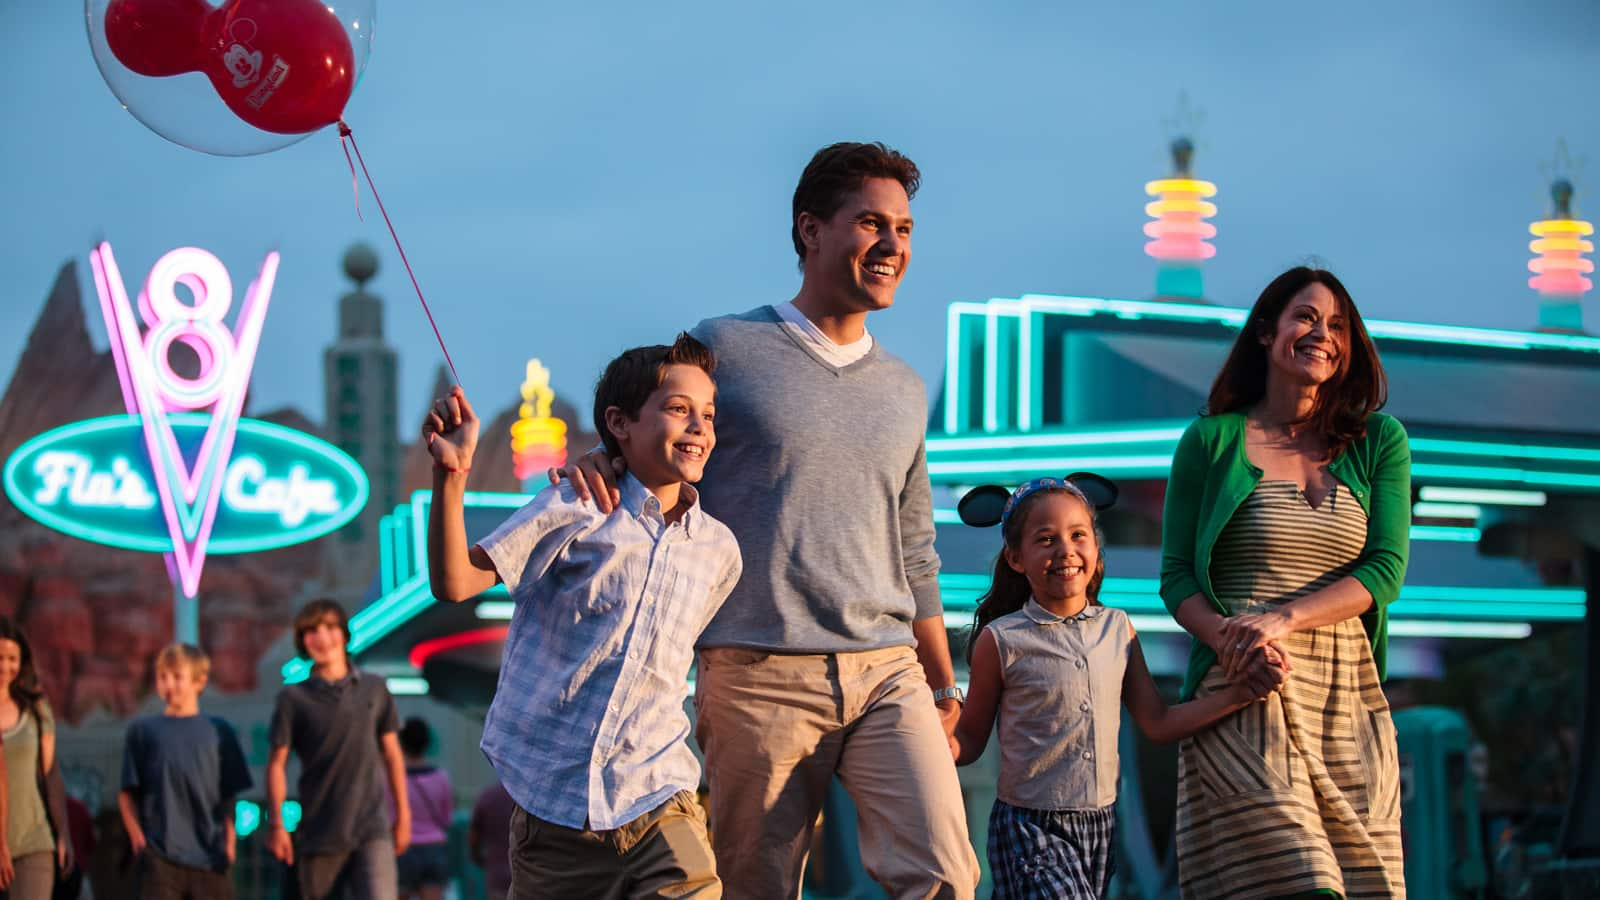 A family of 4 walks in front of building with neon sign that says 'Flo's Cafe' at dusk